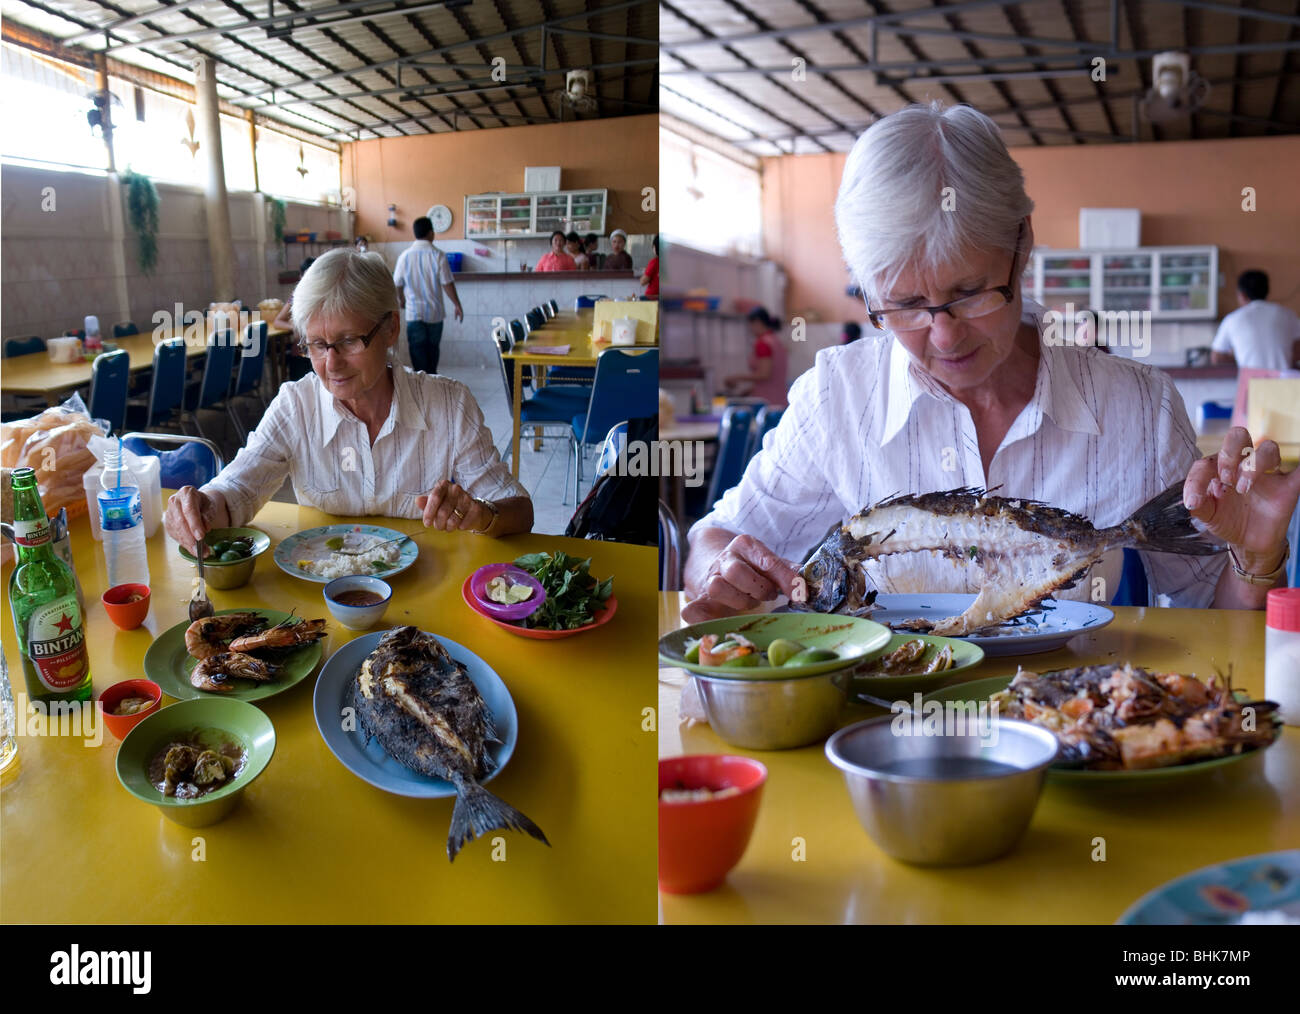 Fish-eating with fingers for an inexperienced senior tourist (Sulawesi). Touriste s'essayant à manger du - Stock Image